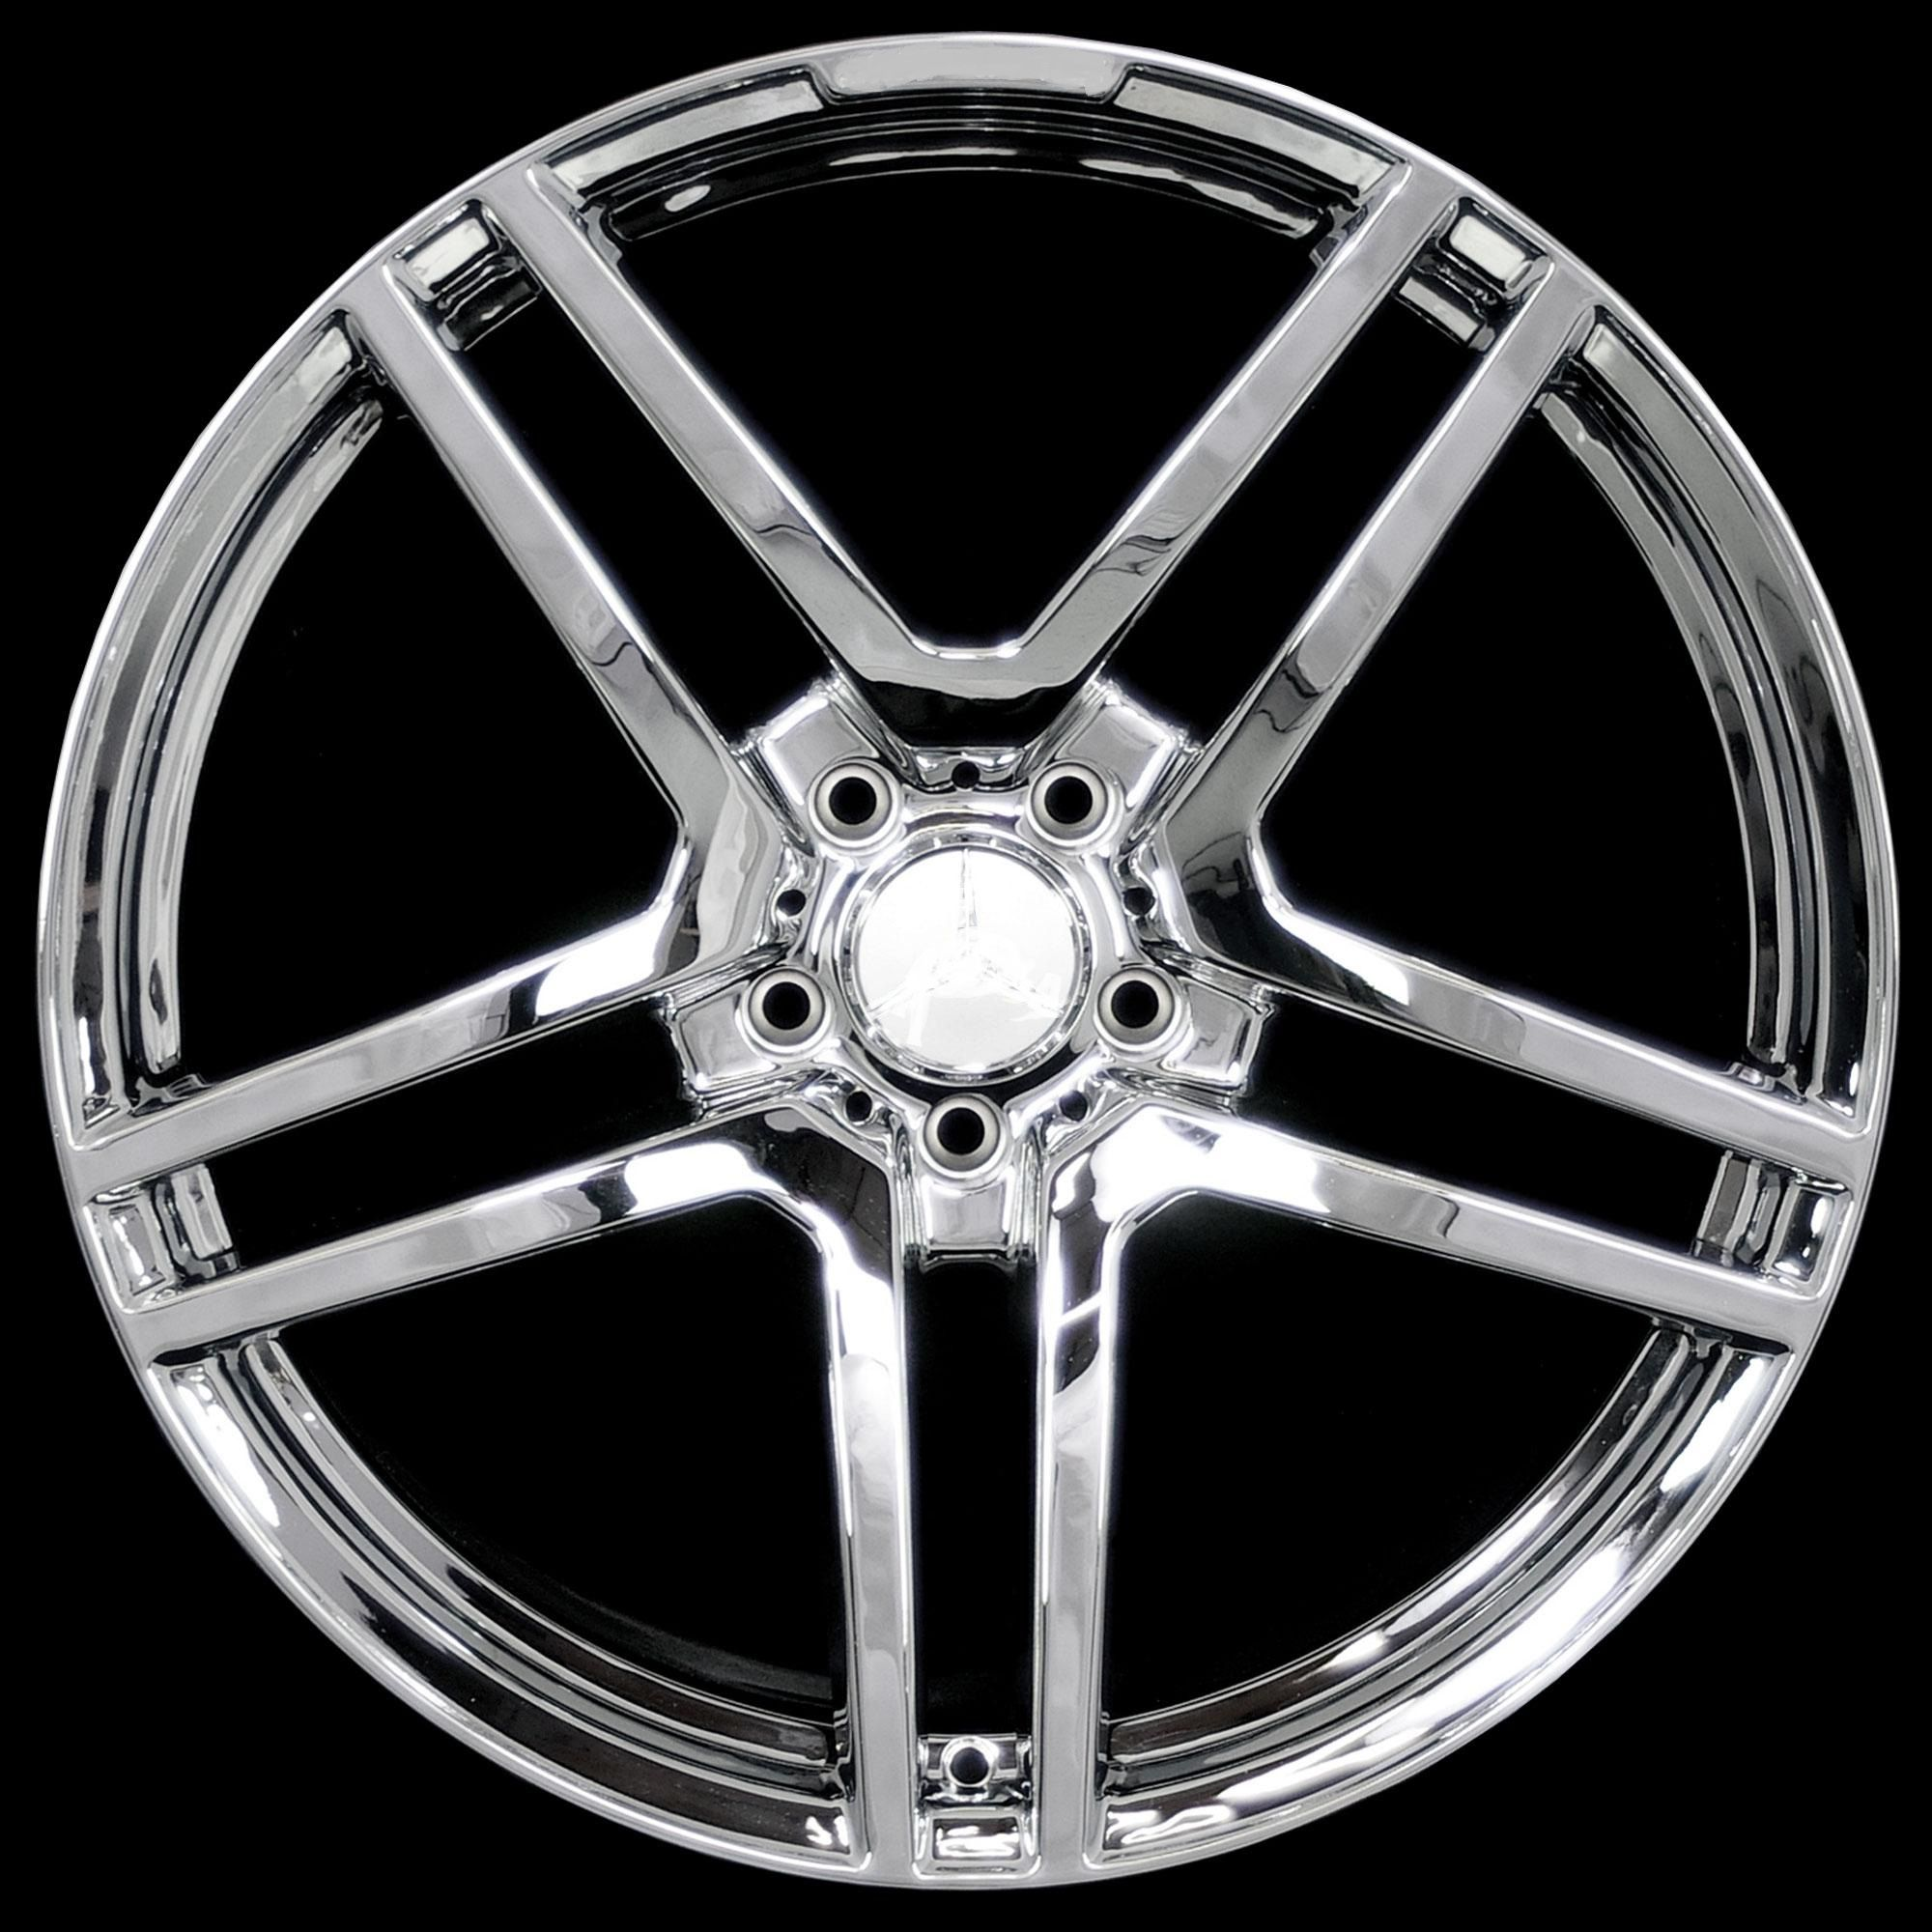 20 AMG Style Chrome Finish Wheels Rims Fit Mercedes E W210 W211 W212